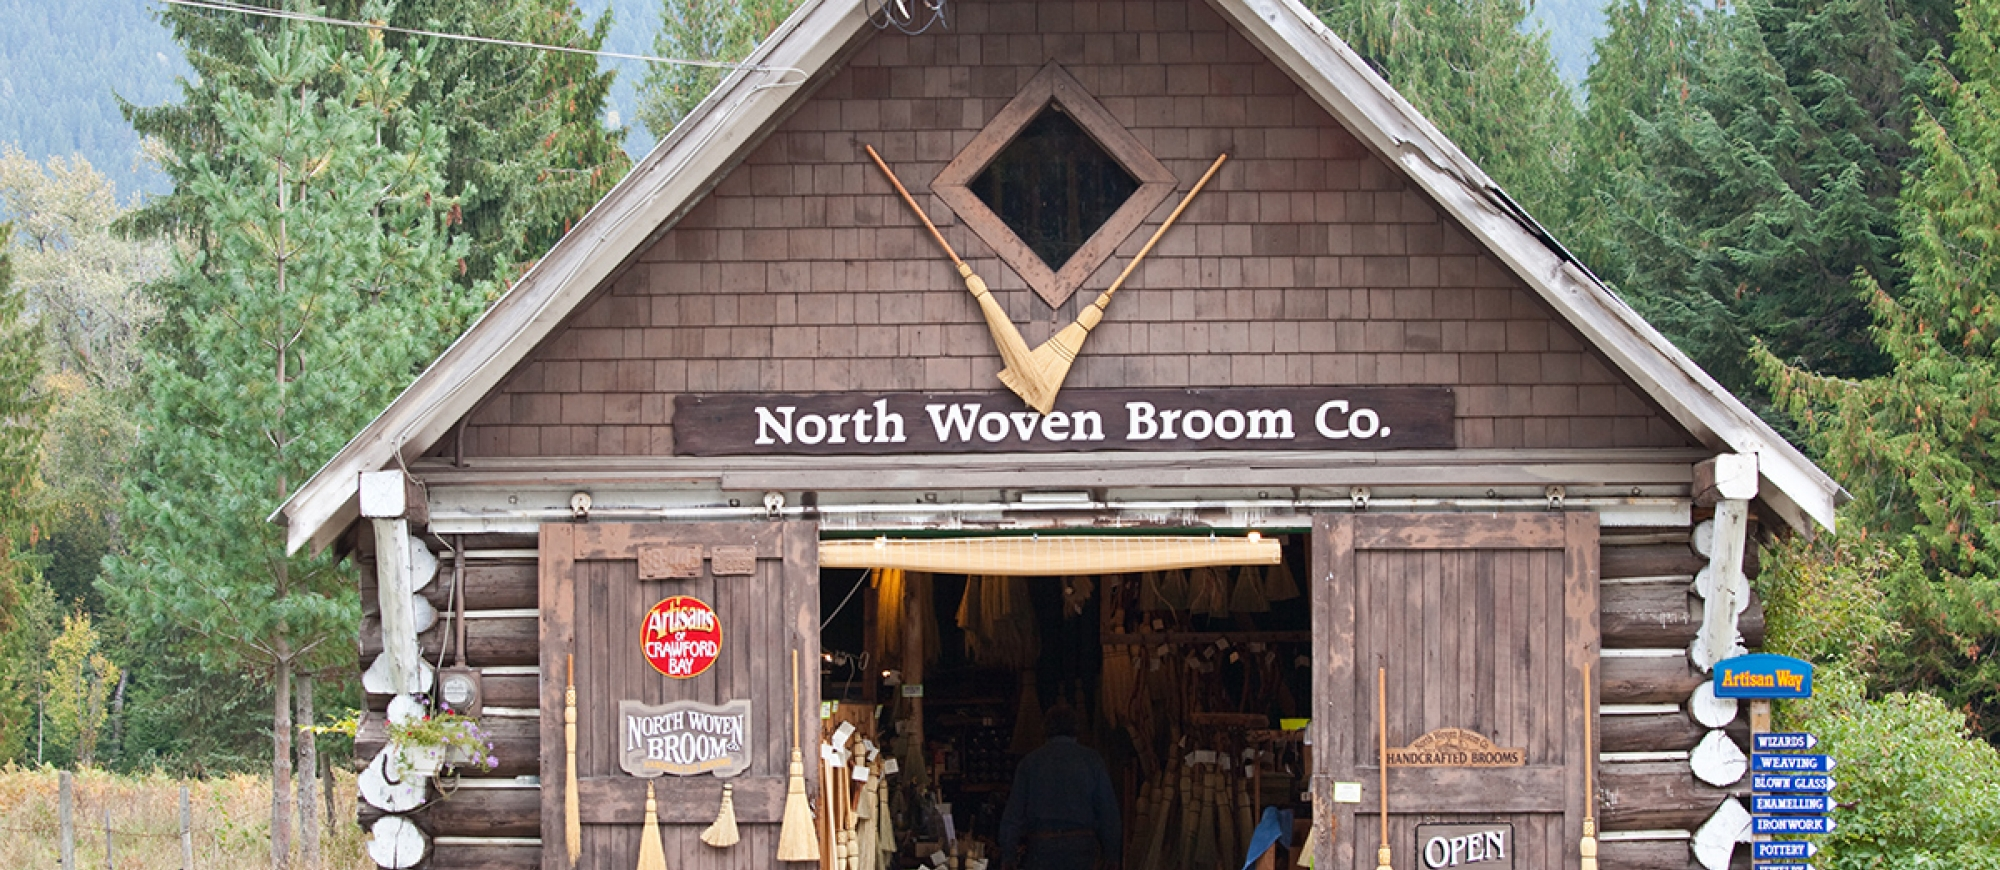 North Woven Broom Co barn building - one of the Artisans of Crawford Bay